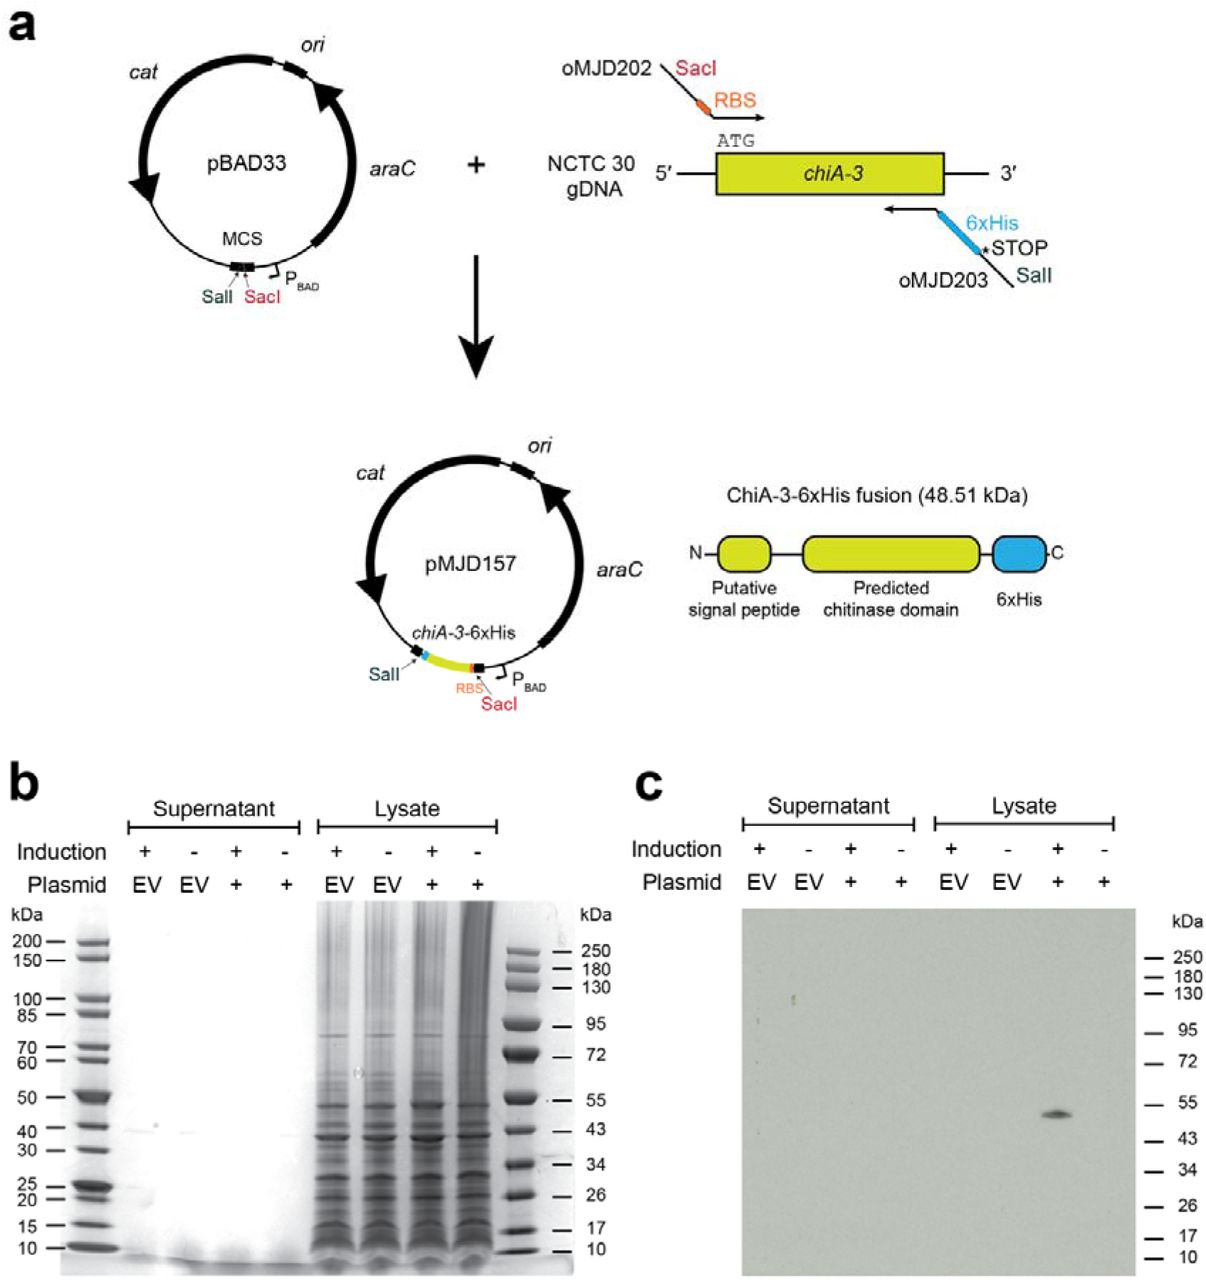 Molecular cloning of chiA-3 and expression of ChiA-3-6xHis. (a): Schematic of cloning strategy used to amplify and insert chiA-3 directionally into the pBAD33 multiple cloning site (MCS), under the arabinose-inducible P BAD promoter, and to incorporate a C-terminal 6xHis tag as a translational fusion. A linker sequence was not incorporated between the C-terminus of ChiA-3 and the 6xHis tag. Figures are not to scale. (b): InstantBlue-stained acrylamide gel of proteins present in supernatants and cell pellet lysates from cultures grown at 23 °C supplemented with arabinose (induction +) or glucose (induction -). No induced bands were easily discerned. (c): Western immunoblot produced from an identically-loaded acrylamide gel to that presented in (b), run in parallel with the gel in (b), and probed with an α-6xHis antibody (see Methods). A band corresponding to the expected molecular weight of ChiA-3-6xHis (48.51 kDa) was detected in the cell pellet lysate of E. coli harbouring pMJD157 only (plasmid +). This size is consistent with the retention of the fusion protein without the cleavage of the putative signal sequence. Protein ladders: NEB #P7719S and #P7717S. EV = empty vector (pBAD33).